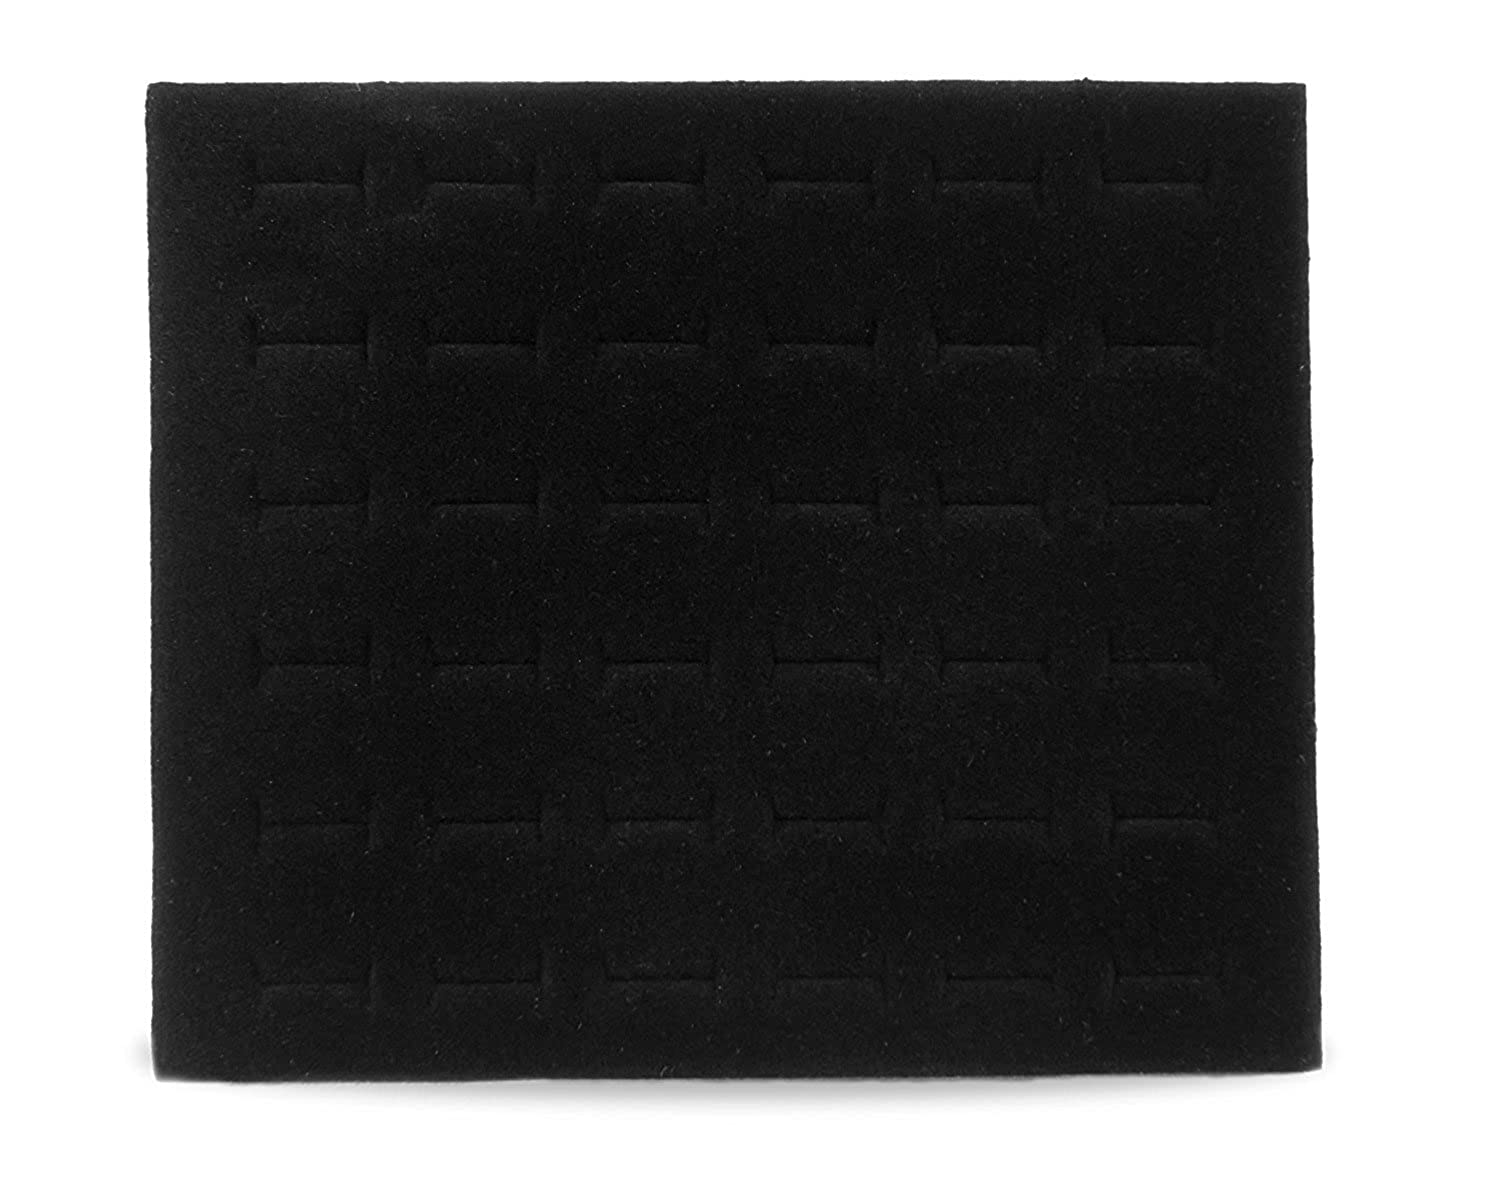 Foam Ring Pad Half Size Black Tray Inserts Jewelry Display Jewelry Displays & Boxes AX-AY-ABHI-31517